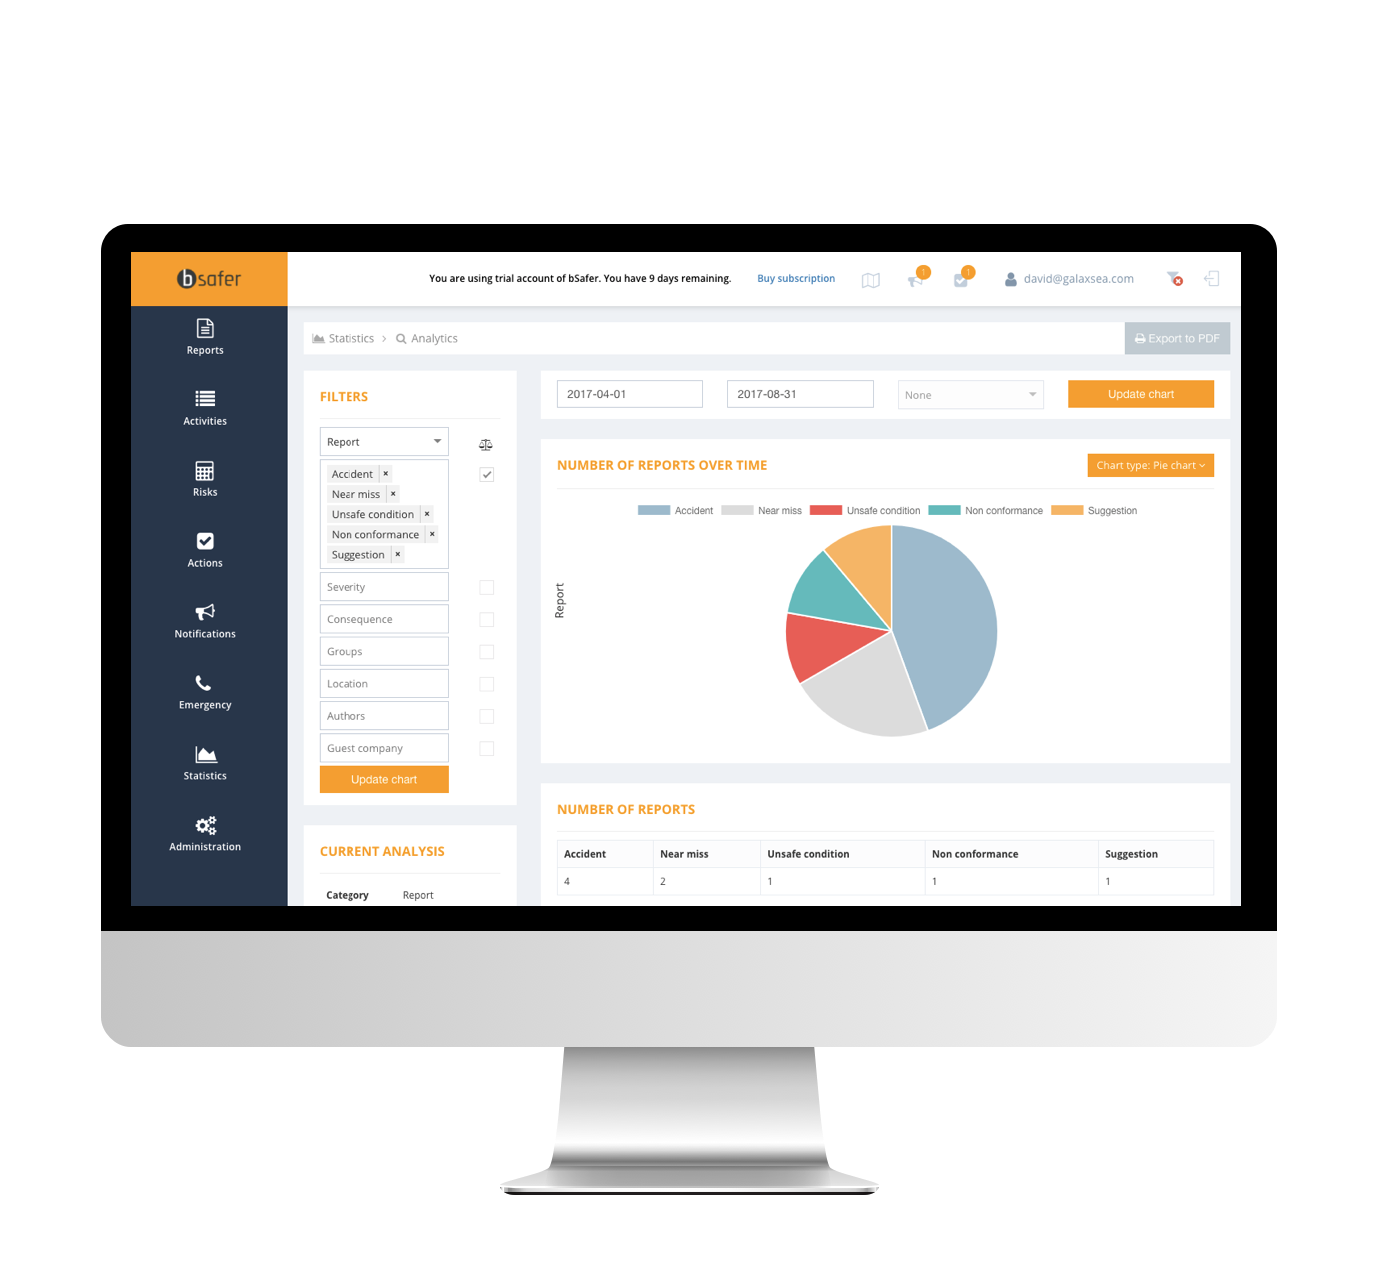 Data Analytics - Present your safety, quality and risk data in clear, graphical ways and engage your audience.Data driven decisions can reduce costs, improve efficiency and help grow your business. bSafer makes data analytics simple and intuitive.